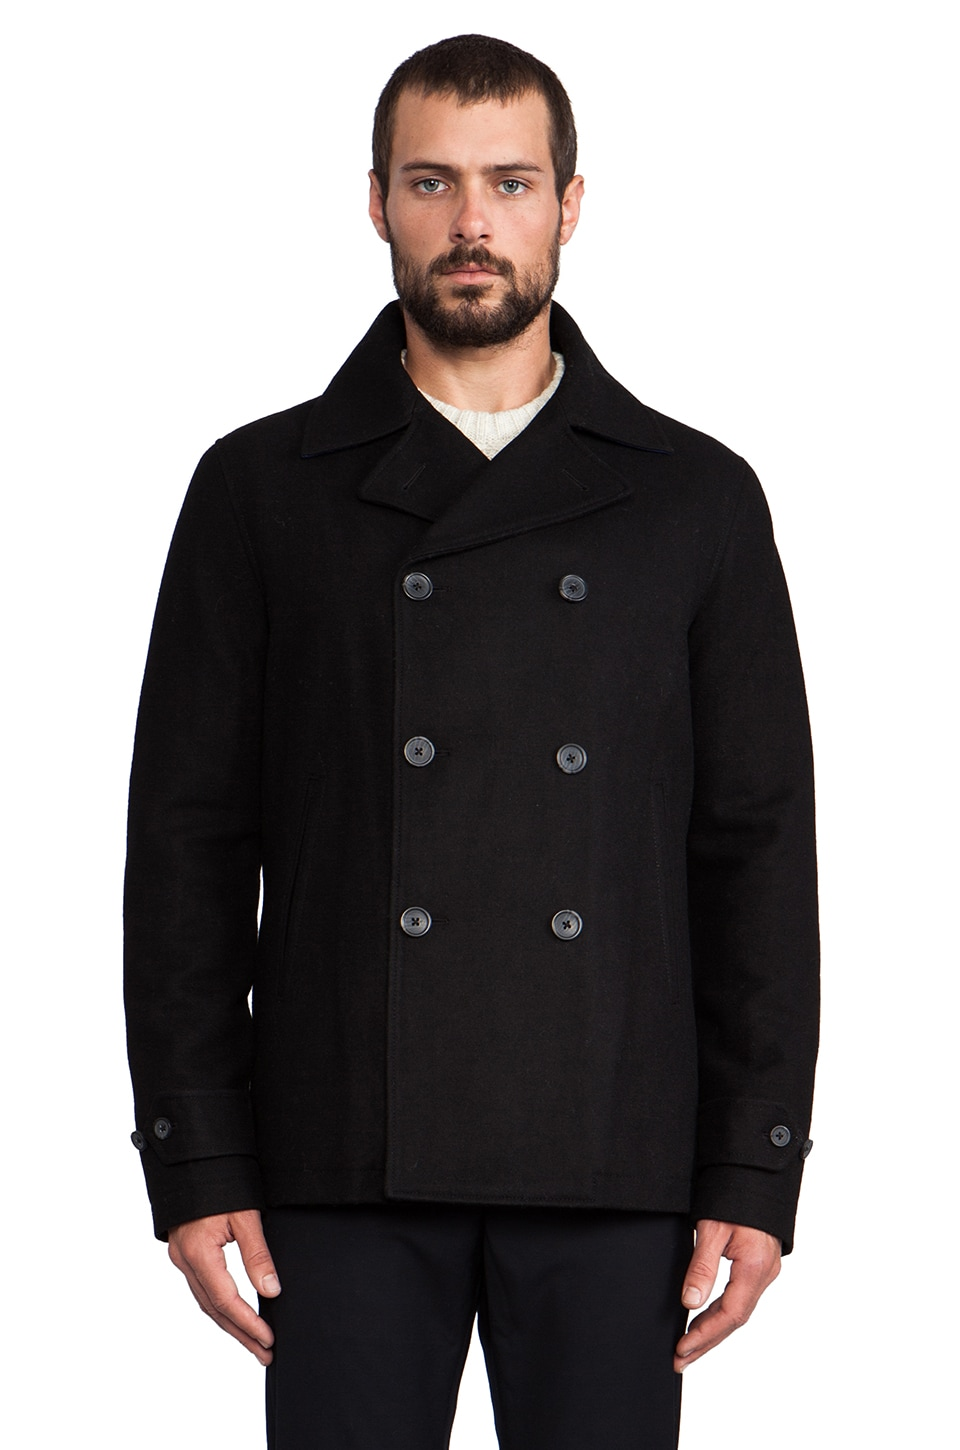 Penguin Peacoat in True Black